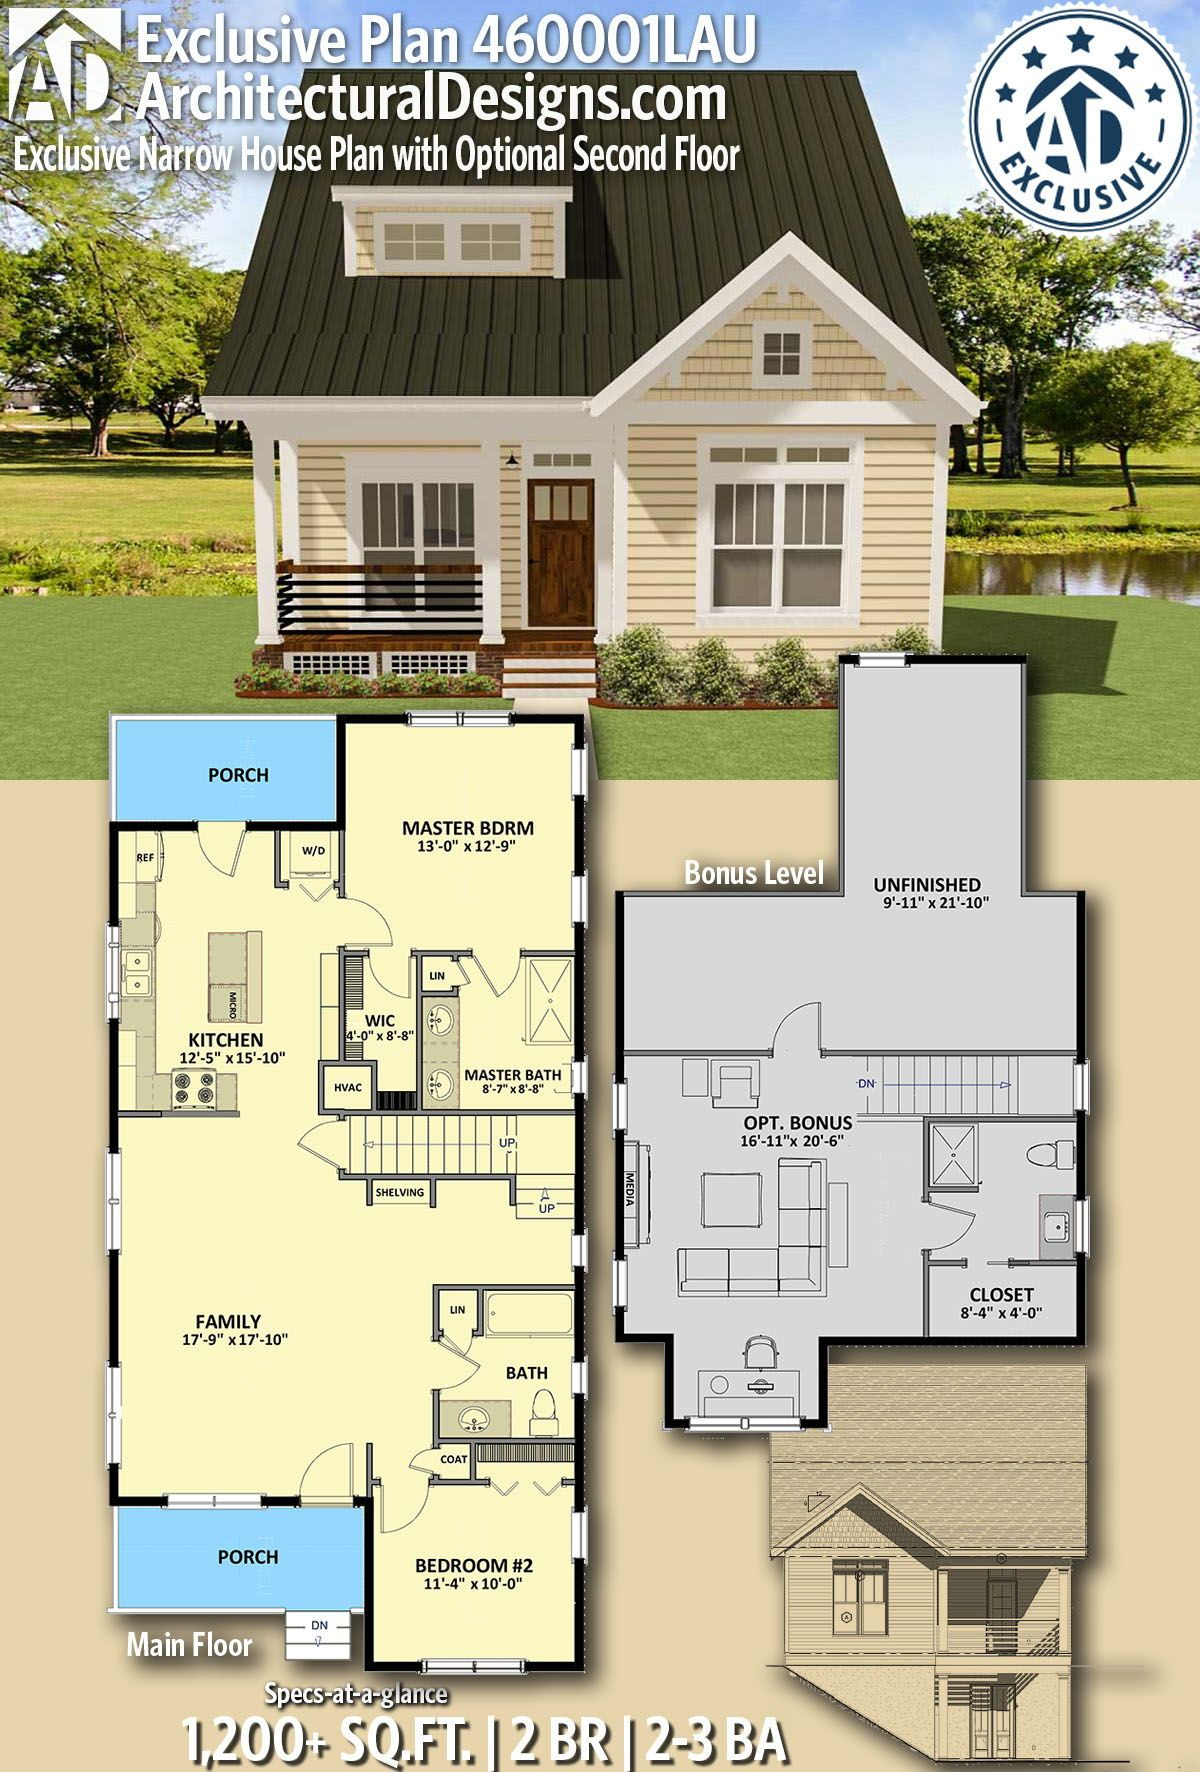 Plan 460001la Exclusive Narrow House Plan With Optional Second Floor Narrow House Plans Sims House Plans Small House Plans